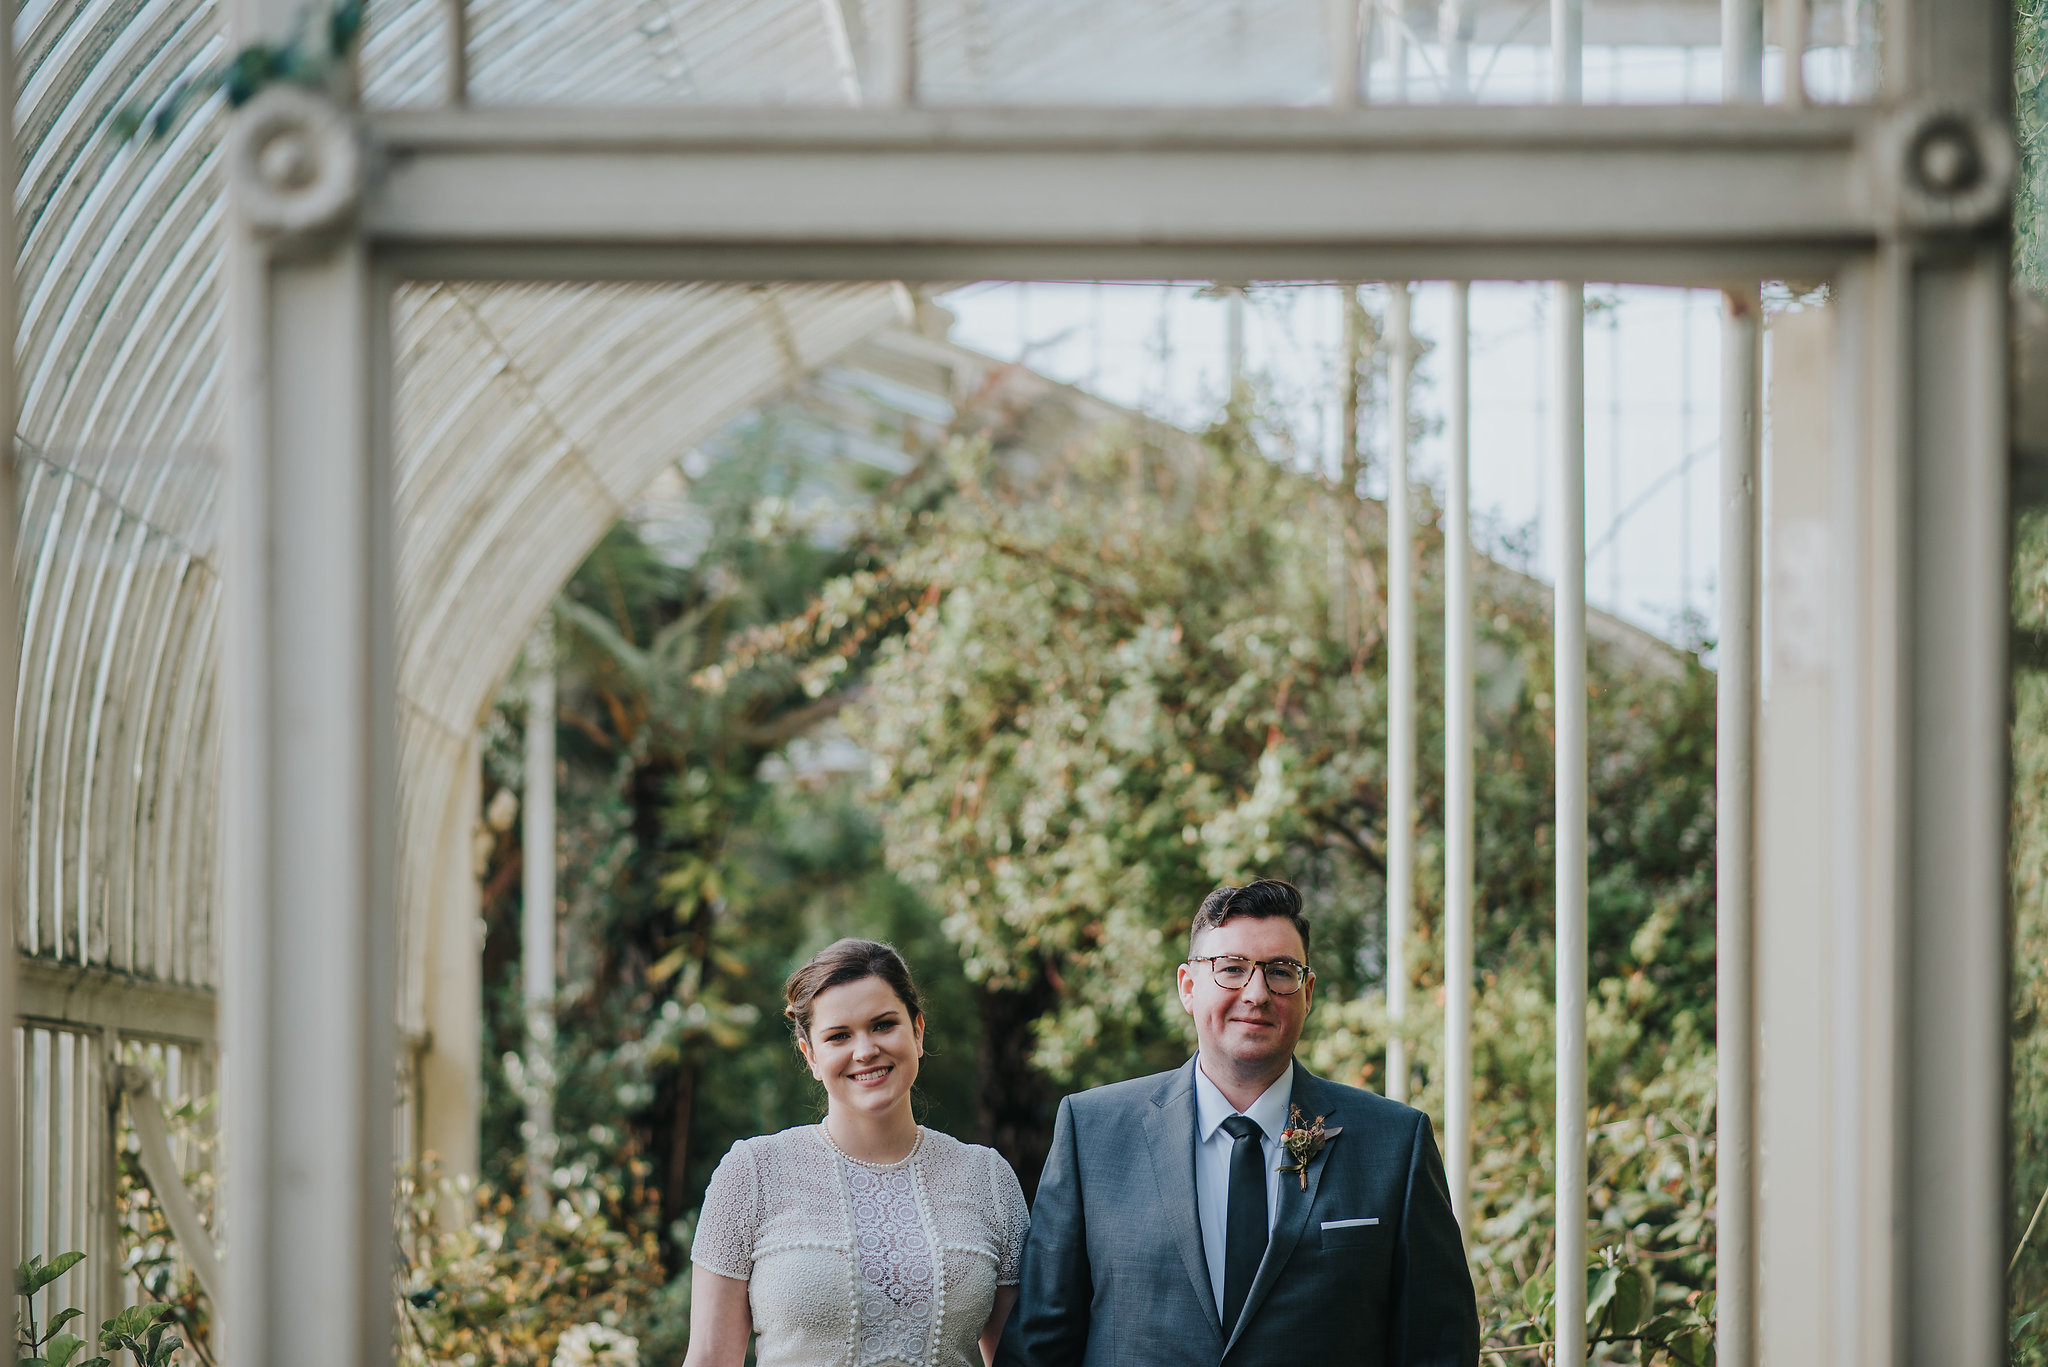 Bride and groom on their wedding day at the Botanic Gardens Dublin